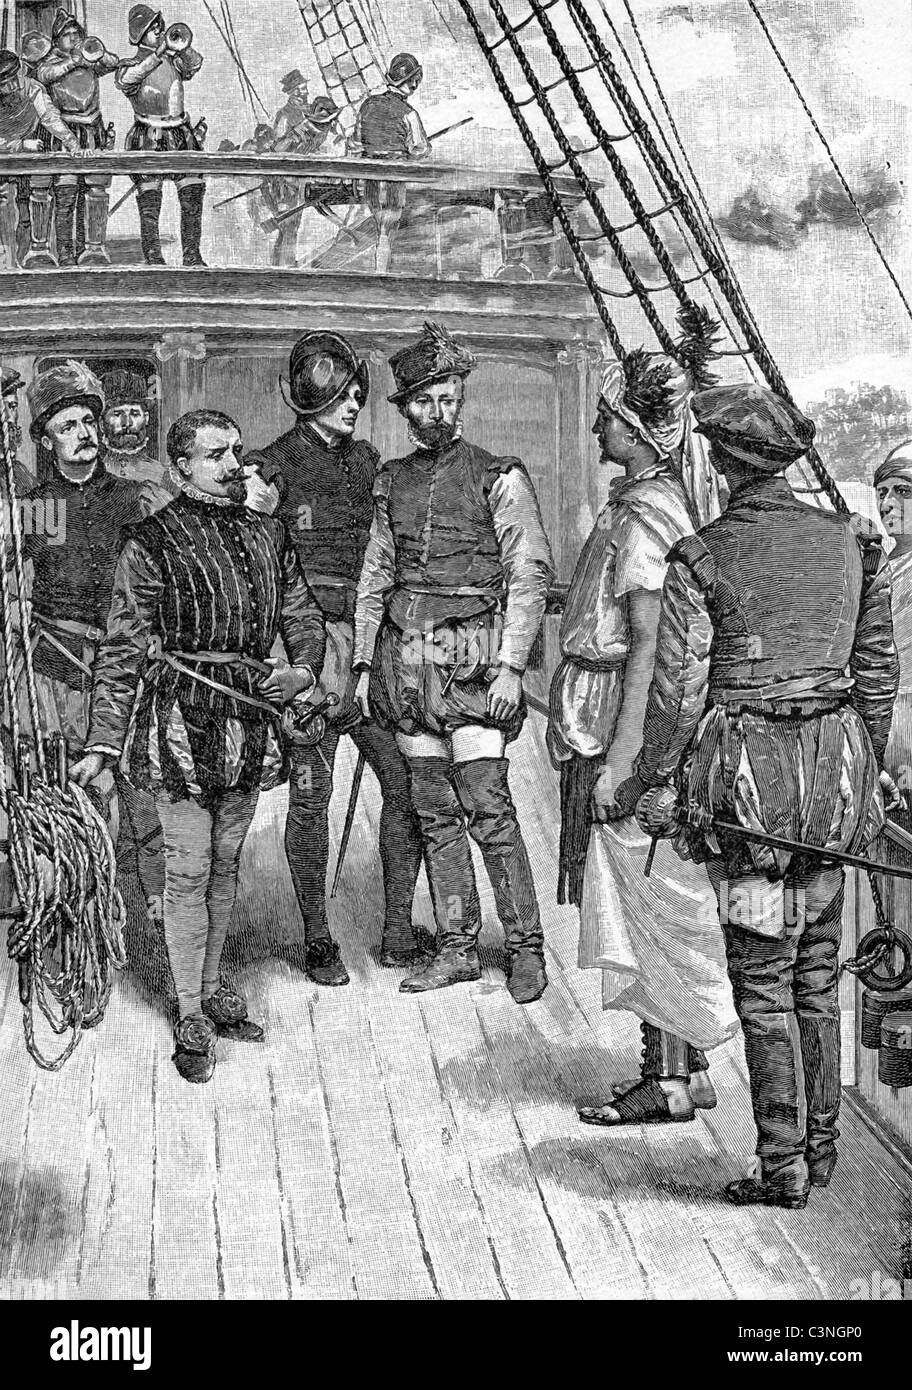 Vasco da Gama (left with no helmet) receives a messenger (standing facing him at right) from the king of Calcutta, - Stock Image